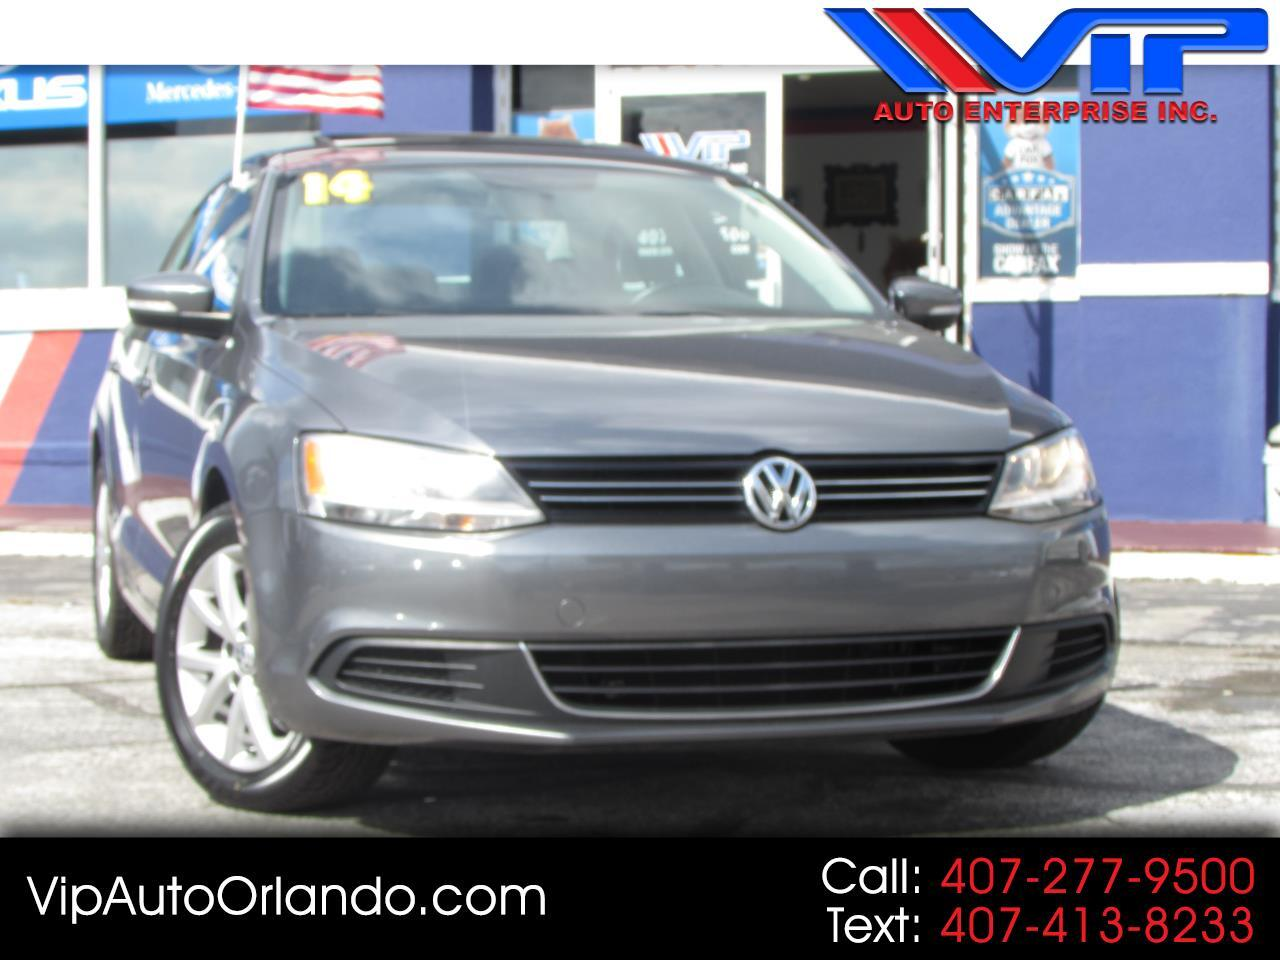 2014 Volkswagen Jetta Sedan 4dr Auto SE w/Connectivity/Sunroof